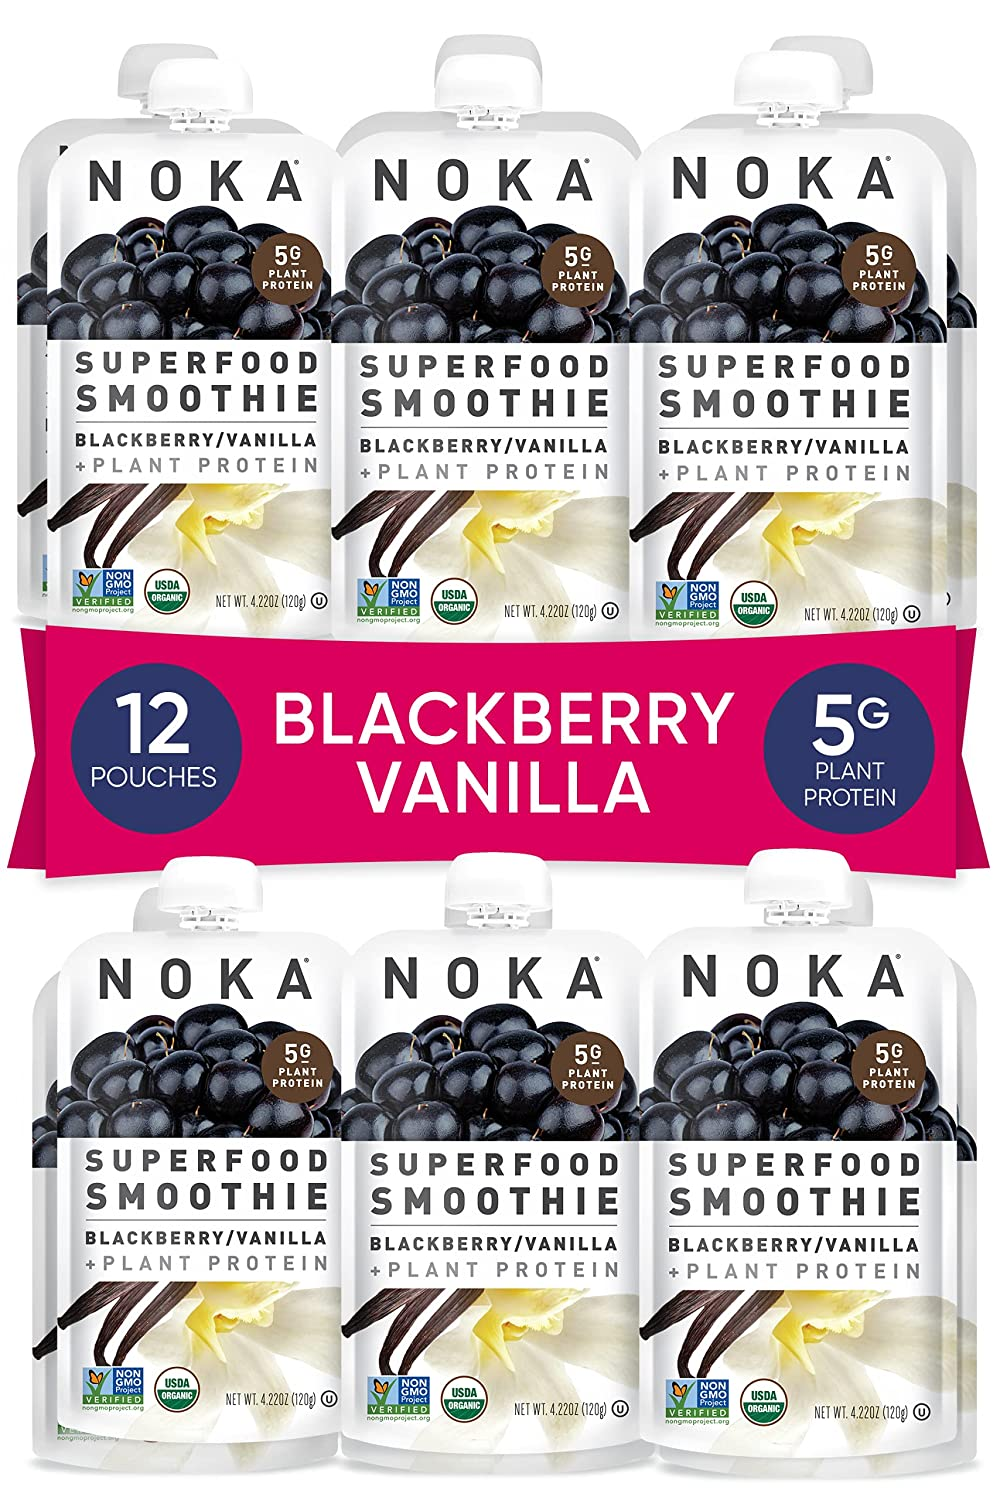 NOKA Superfood Smoothie Pouches (Blackberry Vanilla) 12 Pack, 100% Organic Healthy Fruit Squeeze Snack Packs, Meal Replacement, Non GMO, Gluten Free, Vegan, 5g Plant Protein, 4.2oz Each